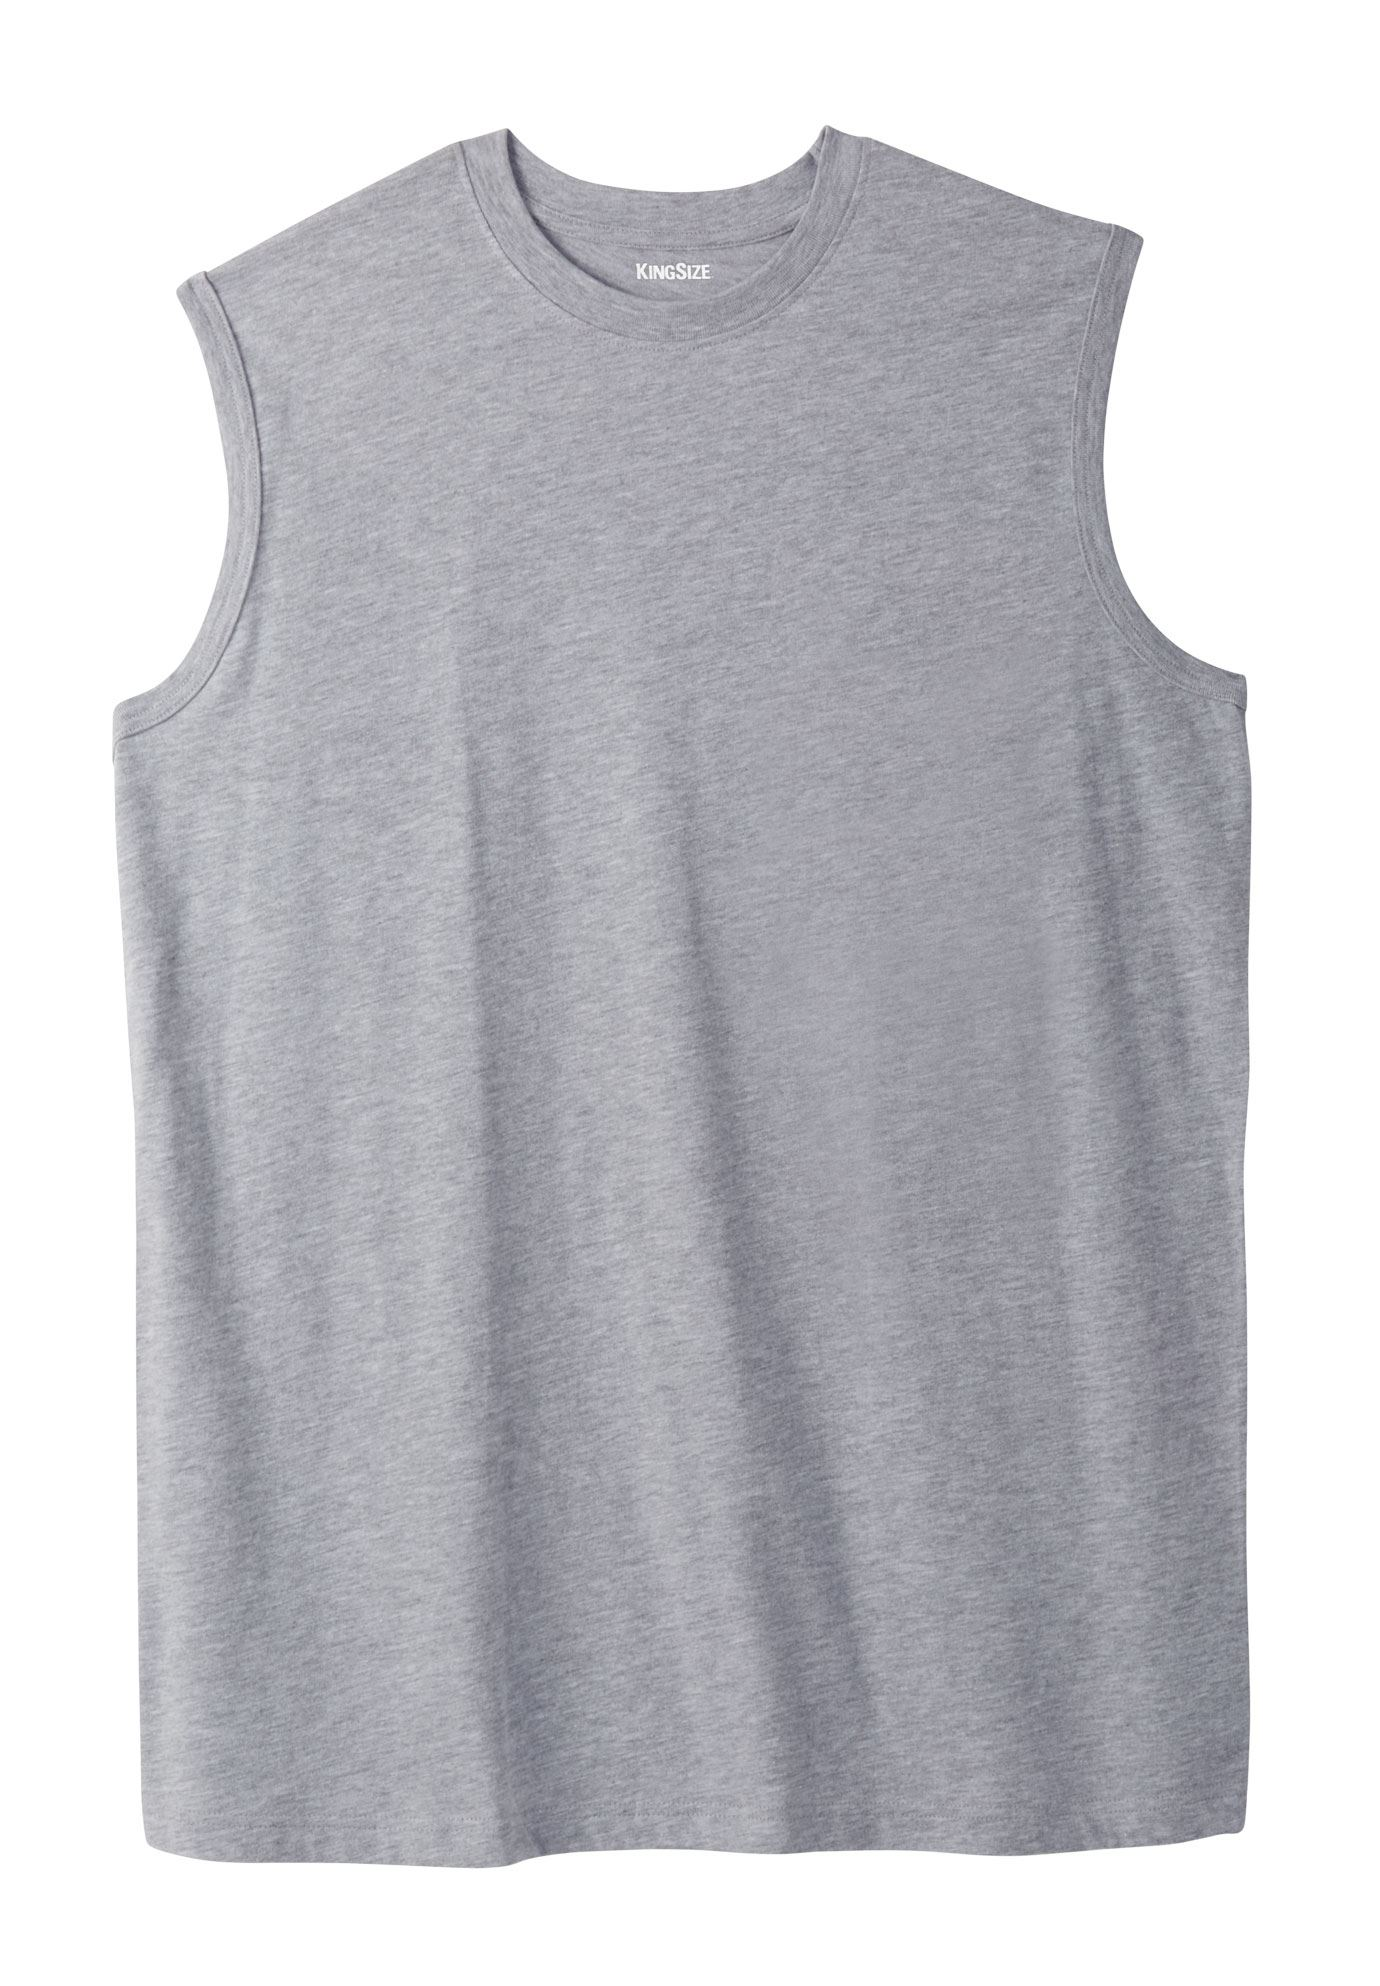 Shrink-less Lightweight Muscle Tee